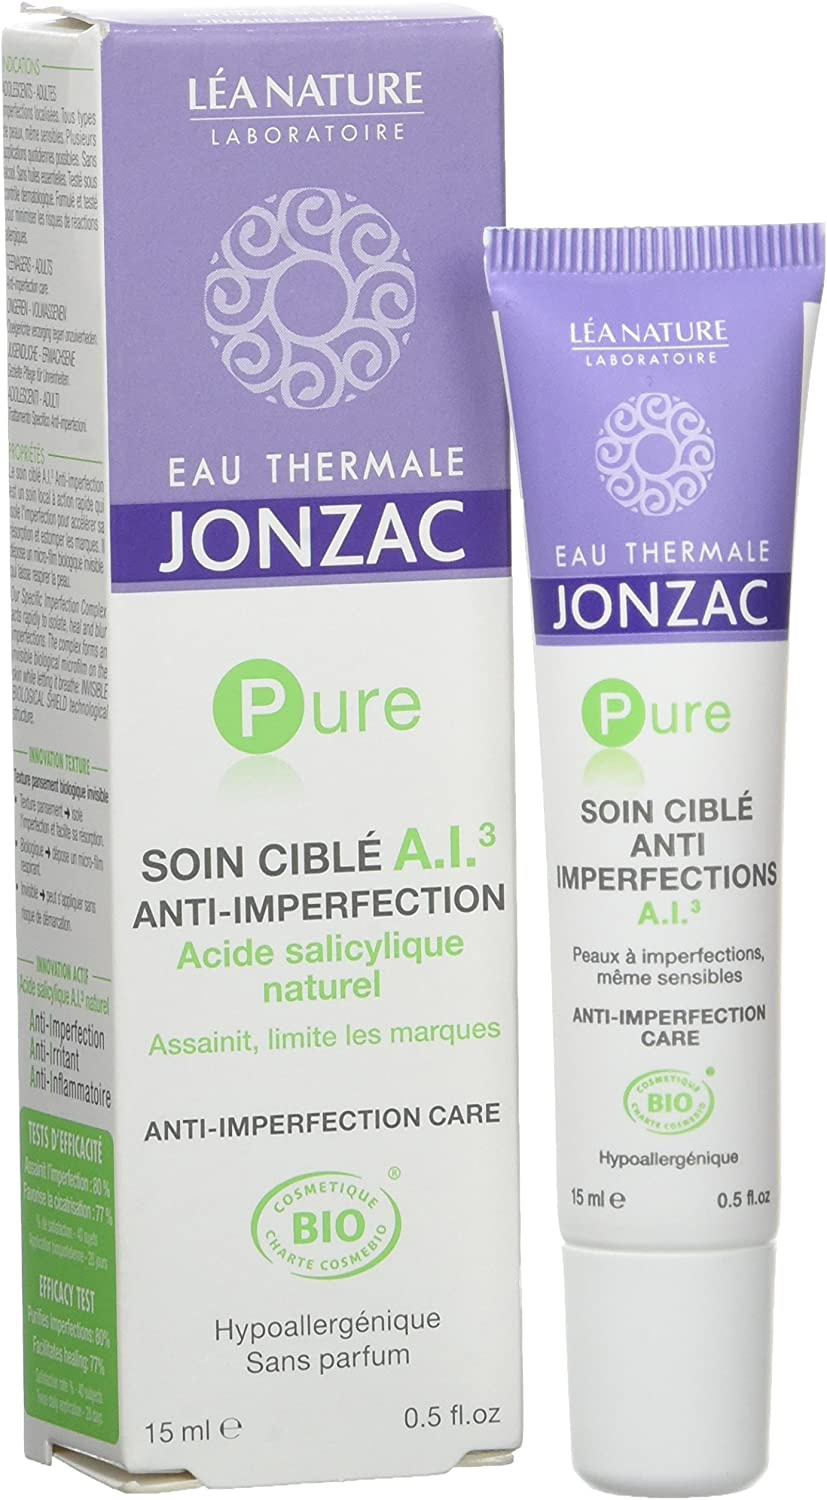 Eau Thermale Jonzac Pure A.I.3 Anti-Imperfection Care